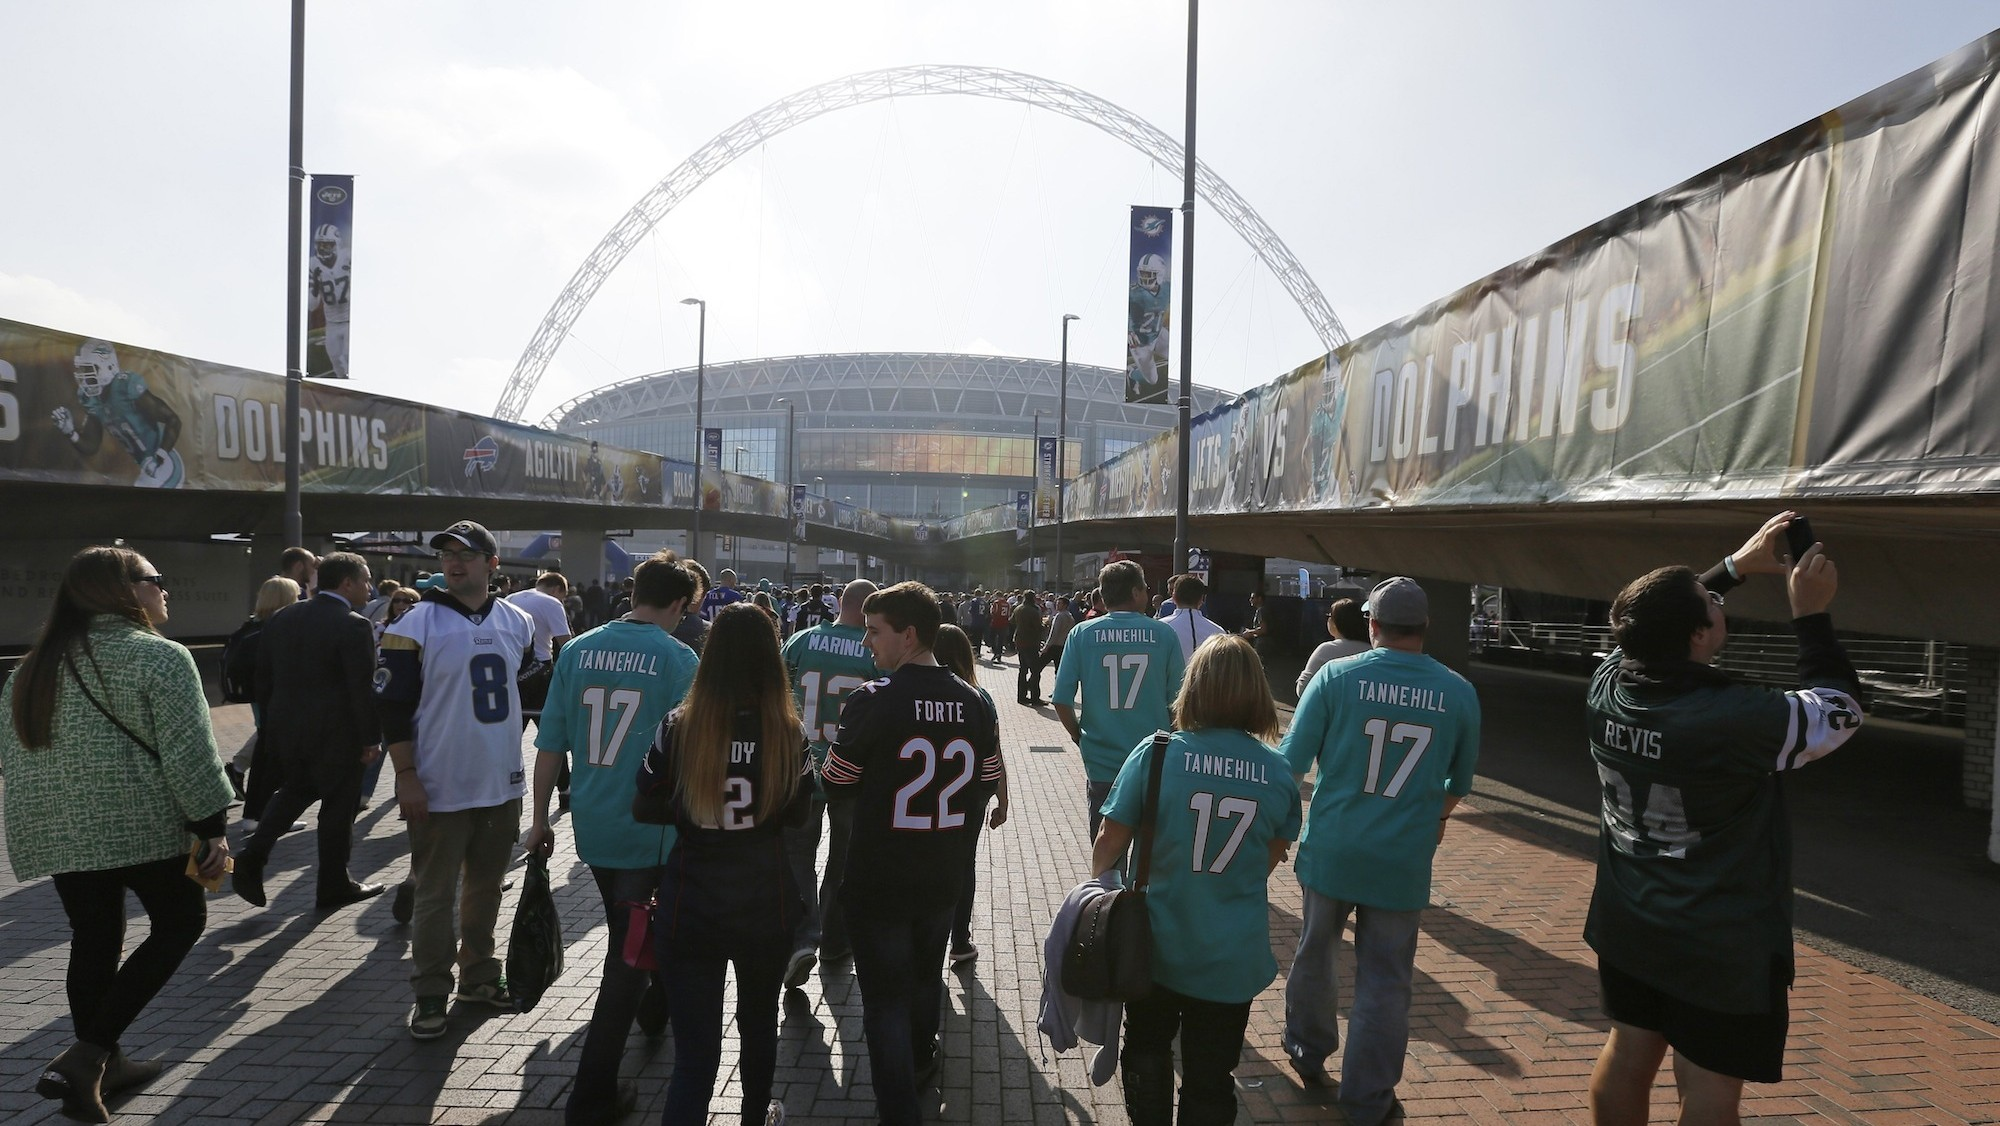 The NFL Should Visit London, But Not Stay